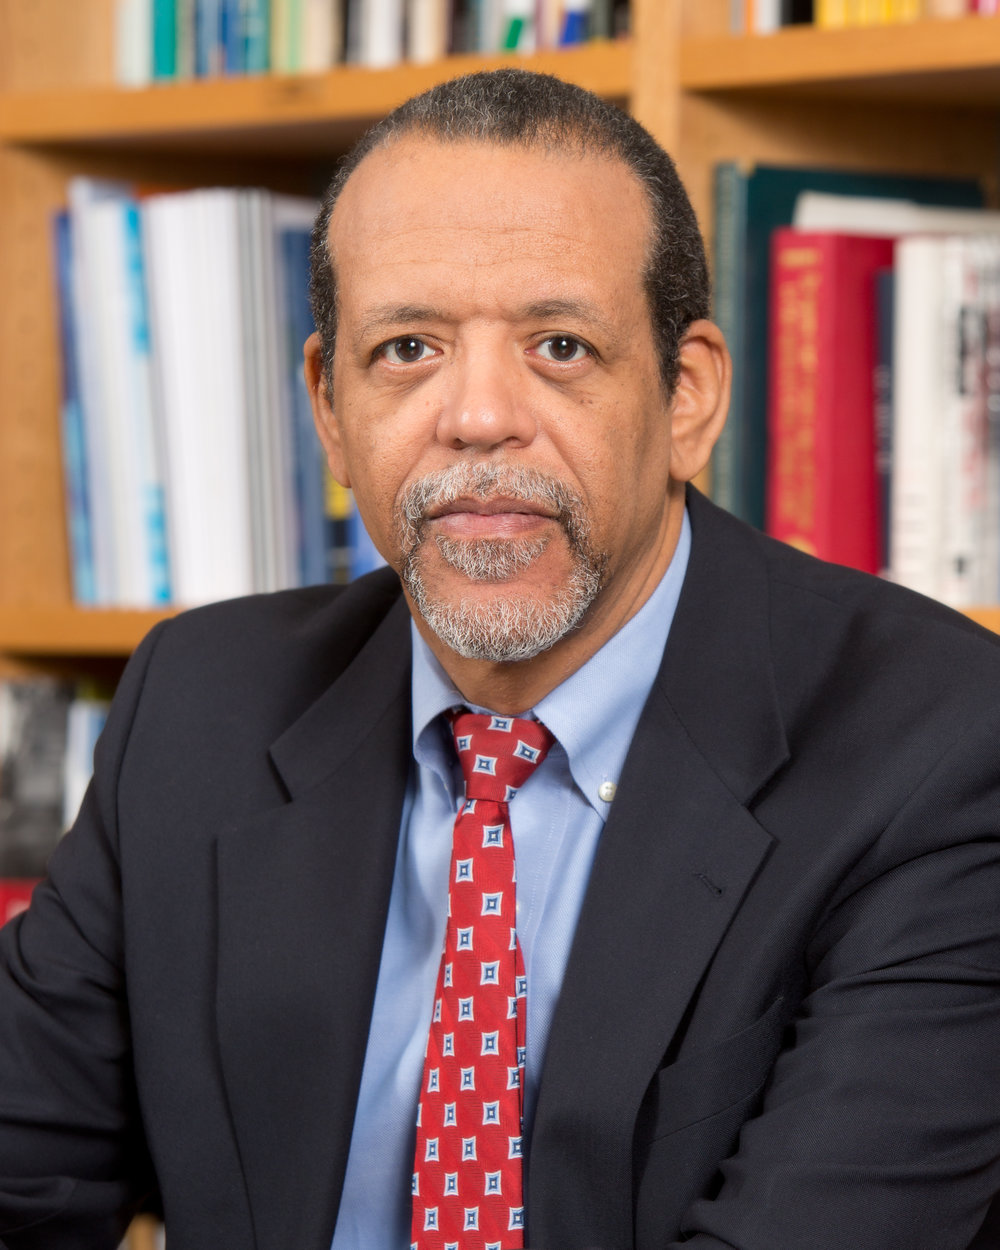 Ronald Ferguson  Director, Achievement Gap Initiative at Harvard University Adjunct Professor, Harvard Kennedy School